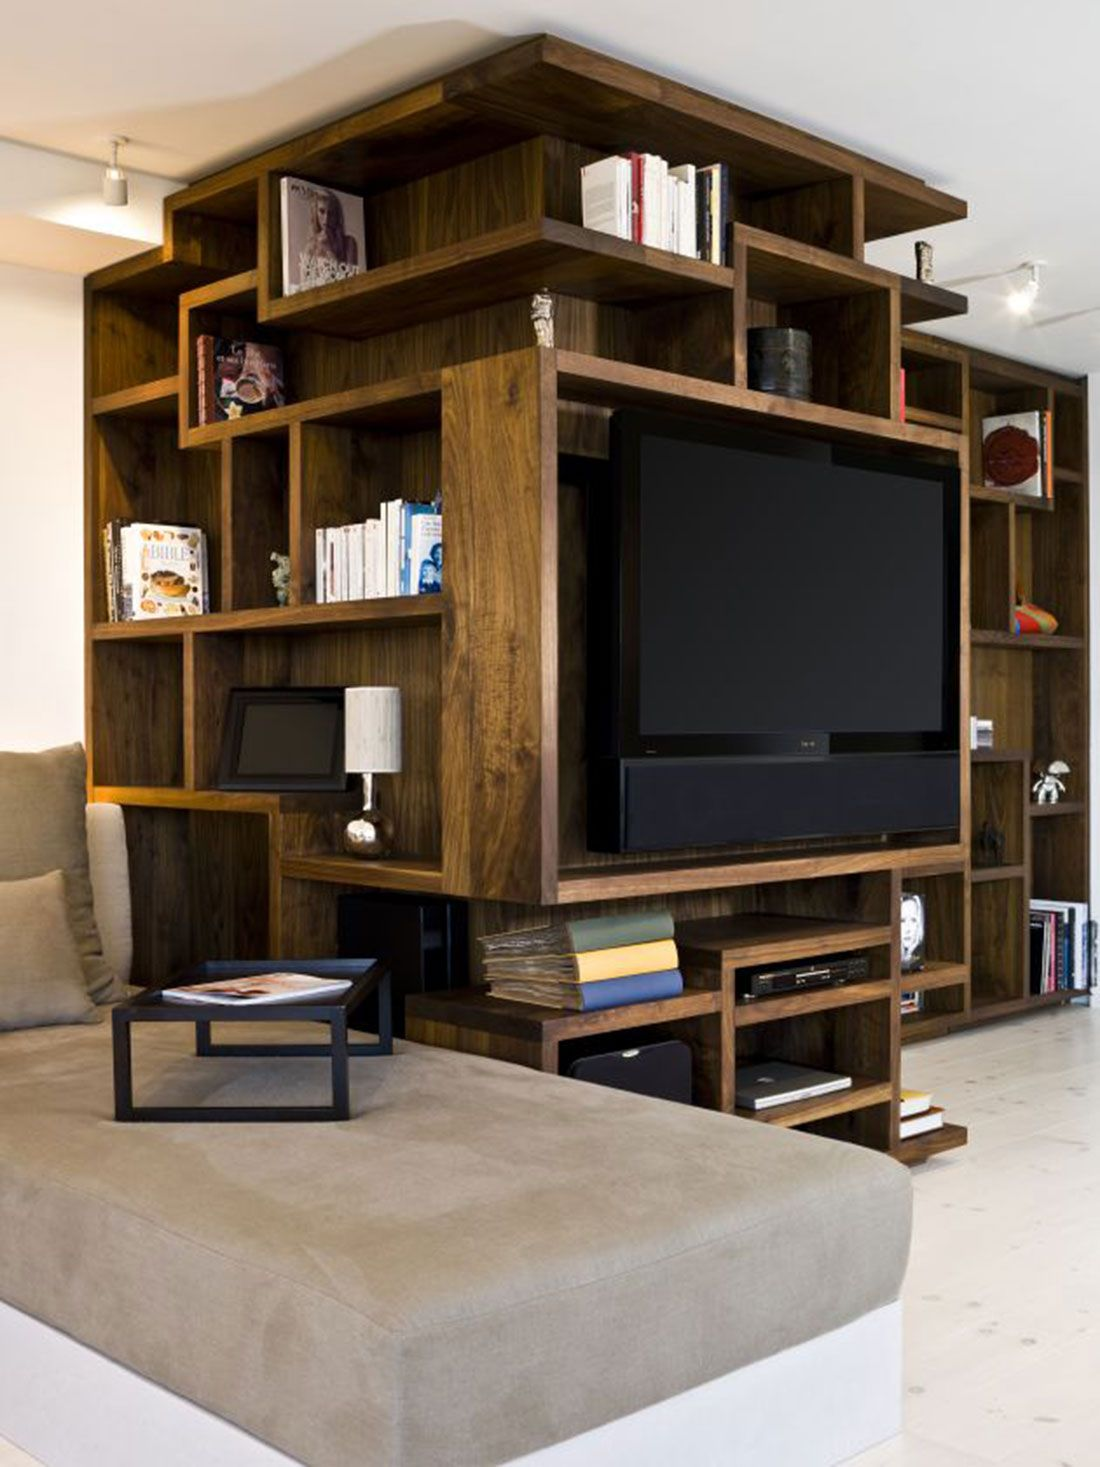 Bookcase Design Ideas elegant modern bookcase unique design more Bookcase Design Ideas There Are Plenty Of Helpful Ideas Pertaining To Your Woodworking Projects At Http